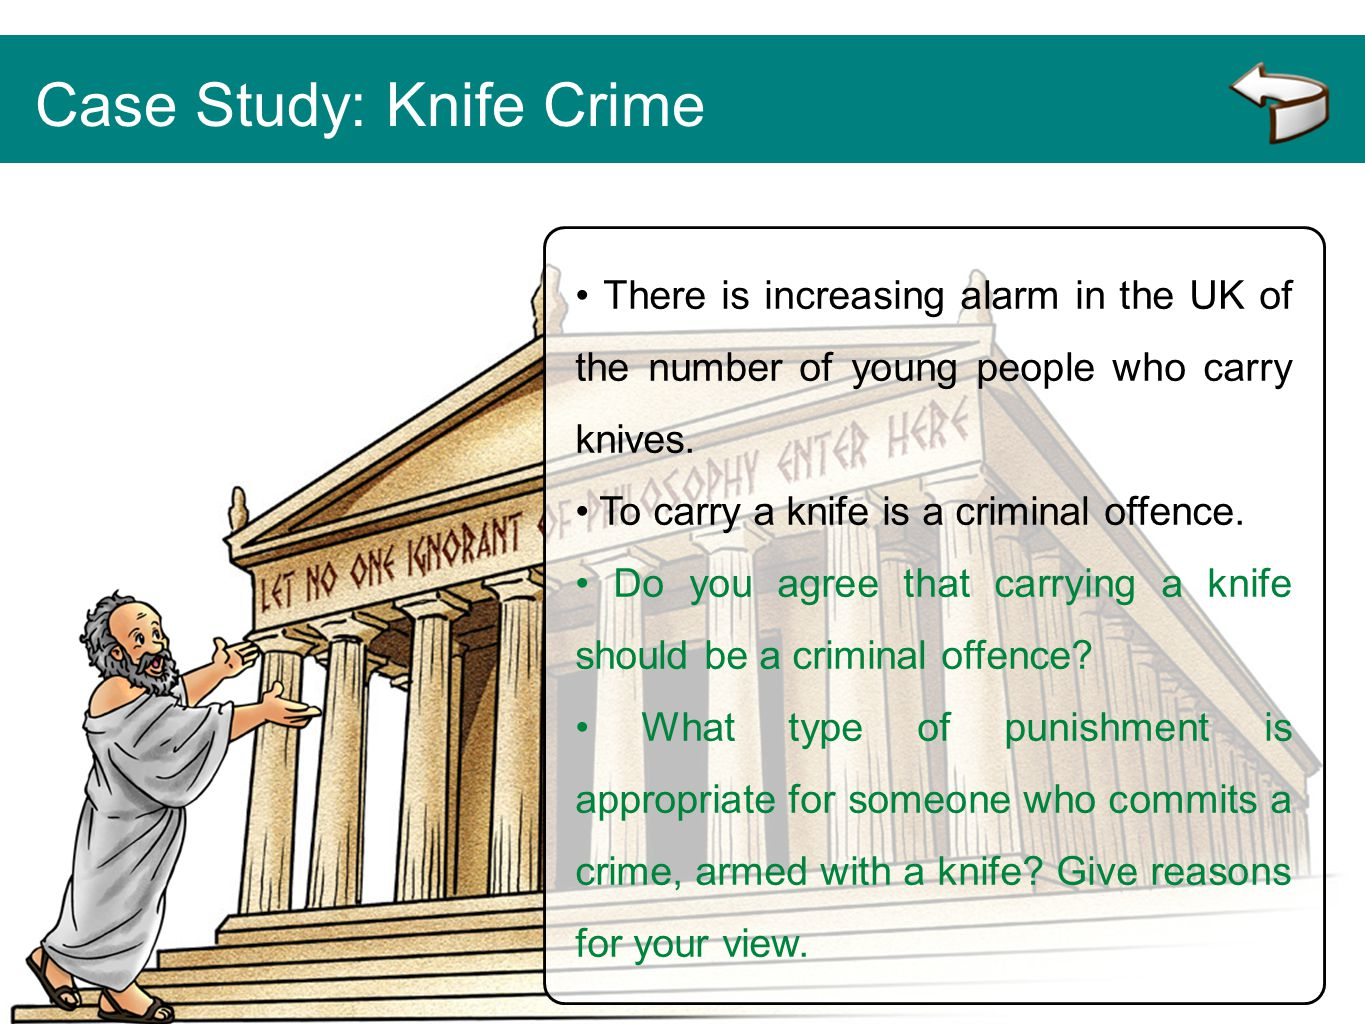 Case Study: Knife Crime